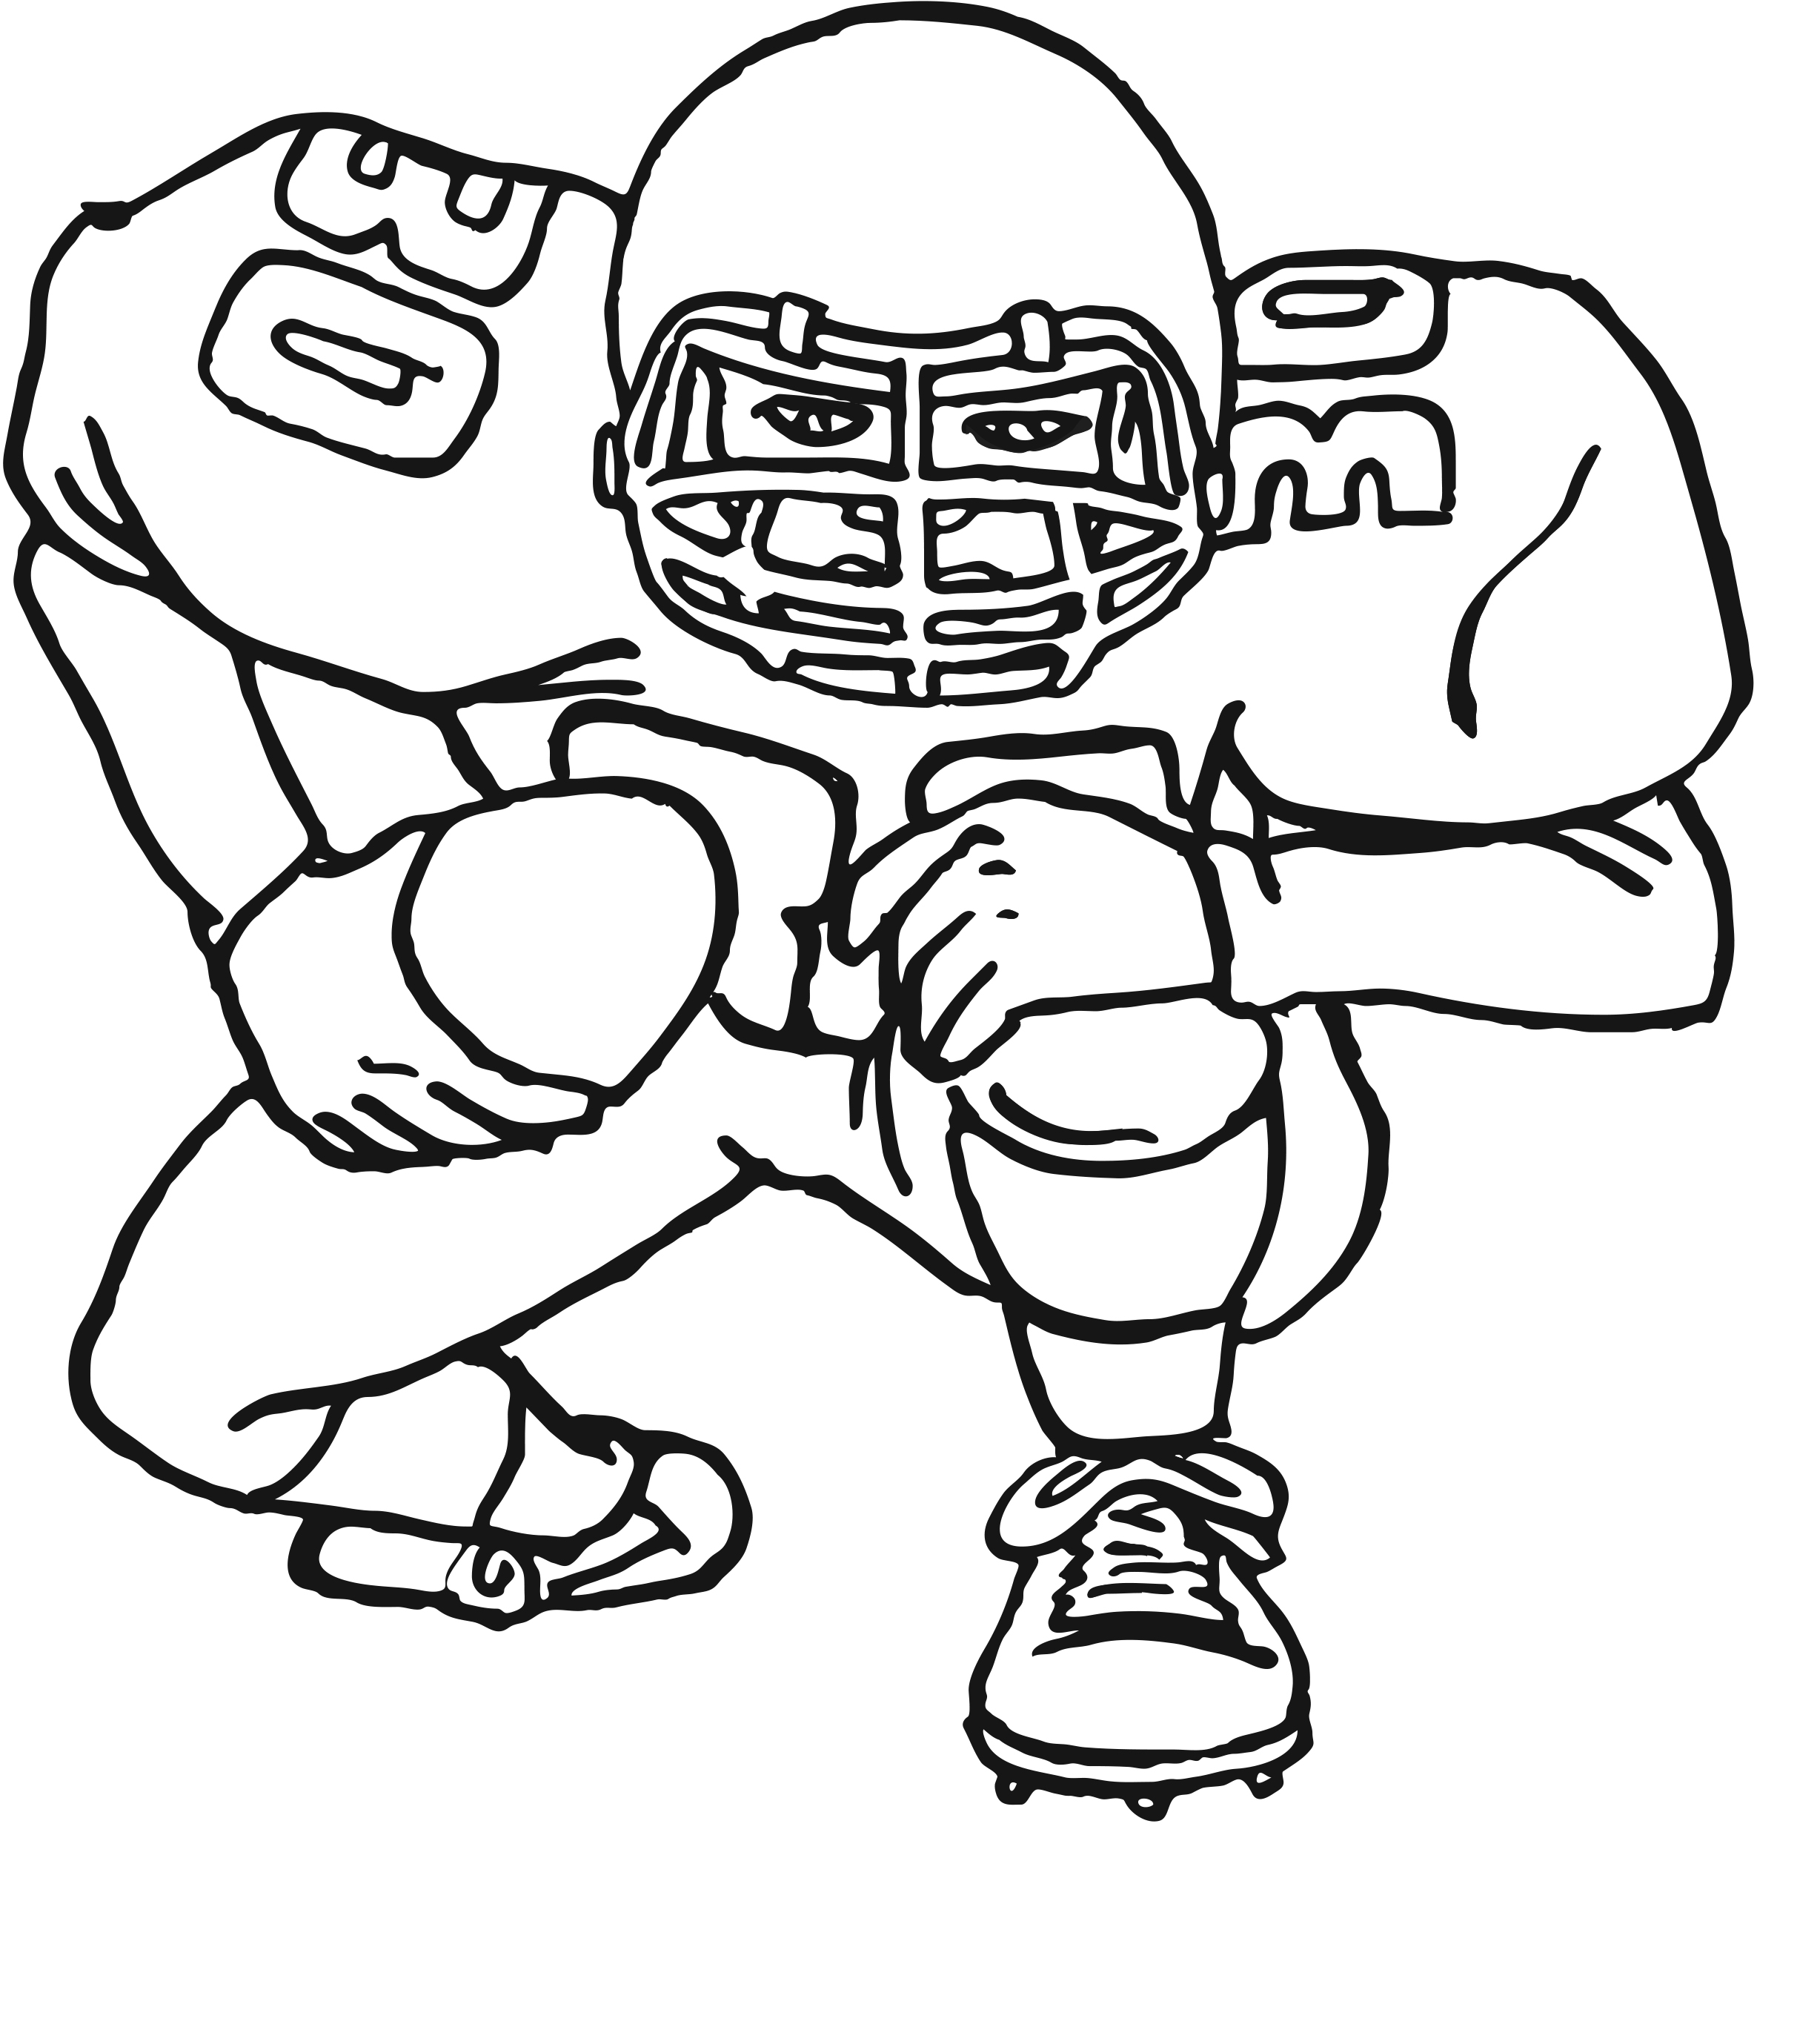 football pictures to color football coloring pages kidsuki color to pictures football